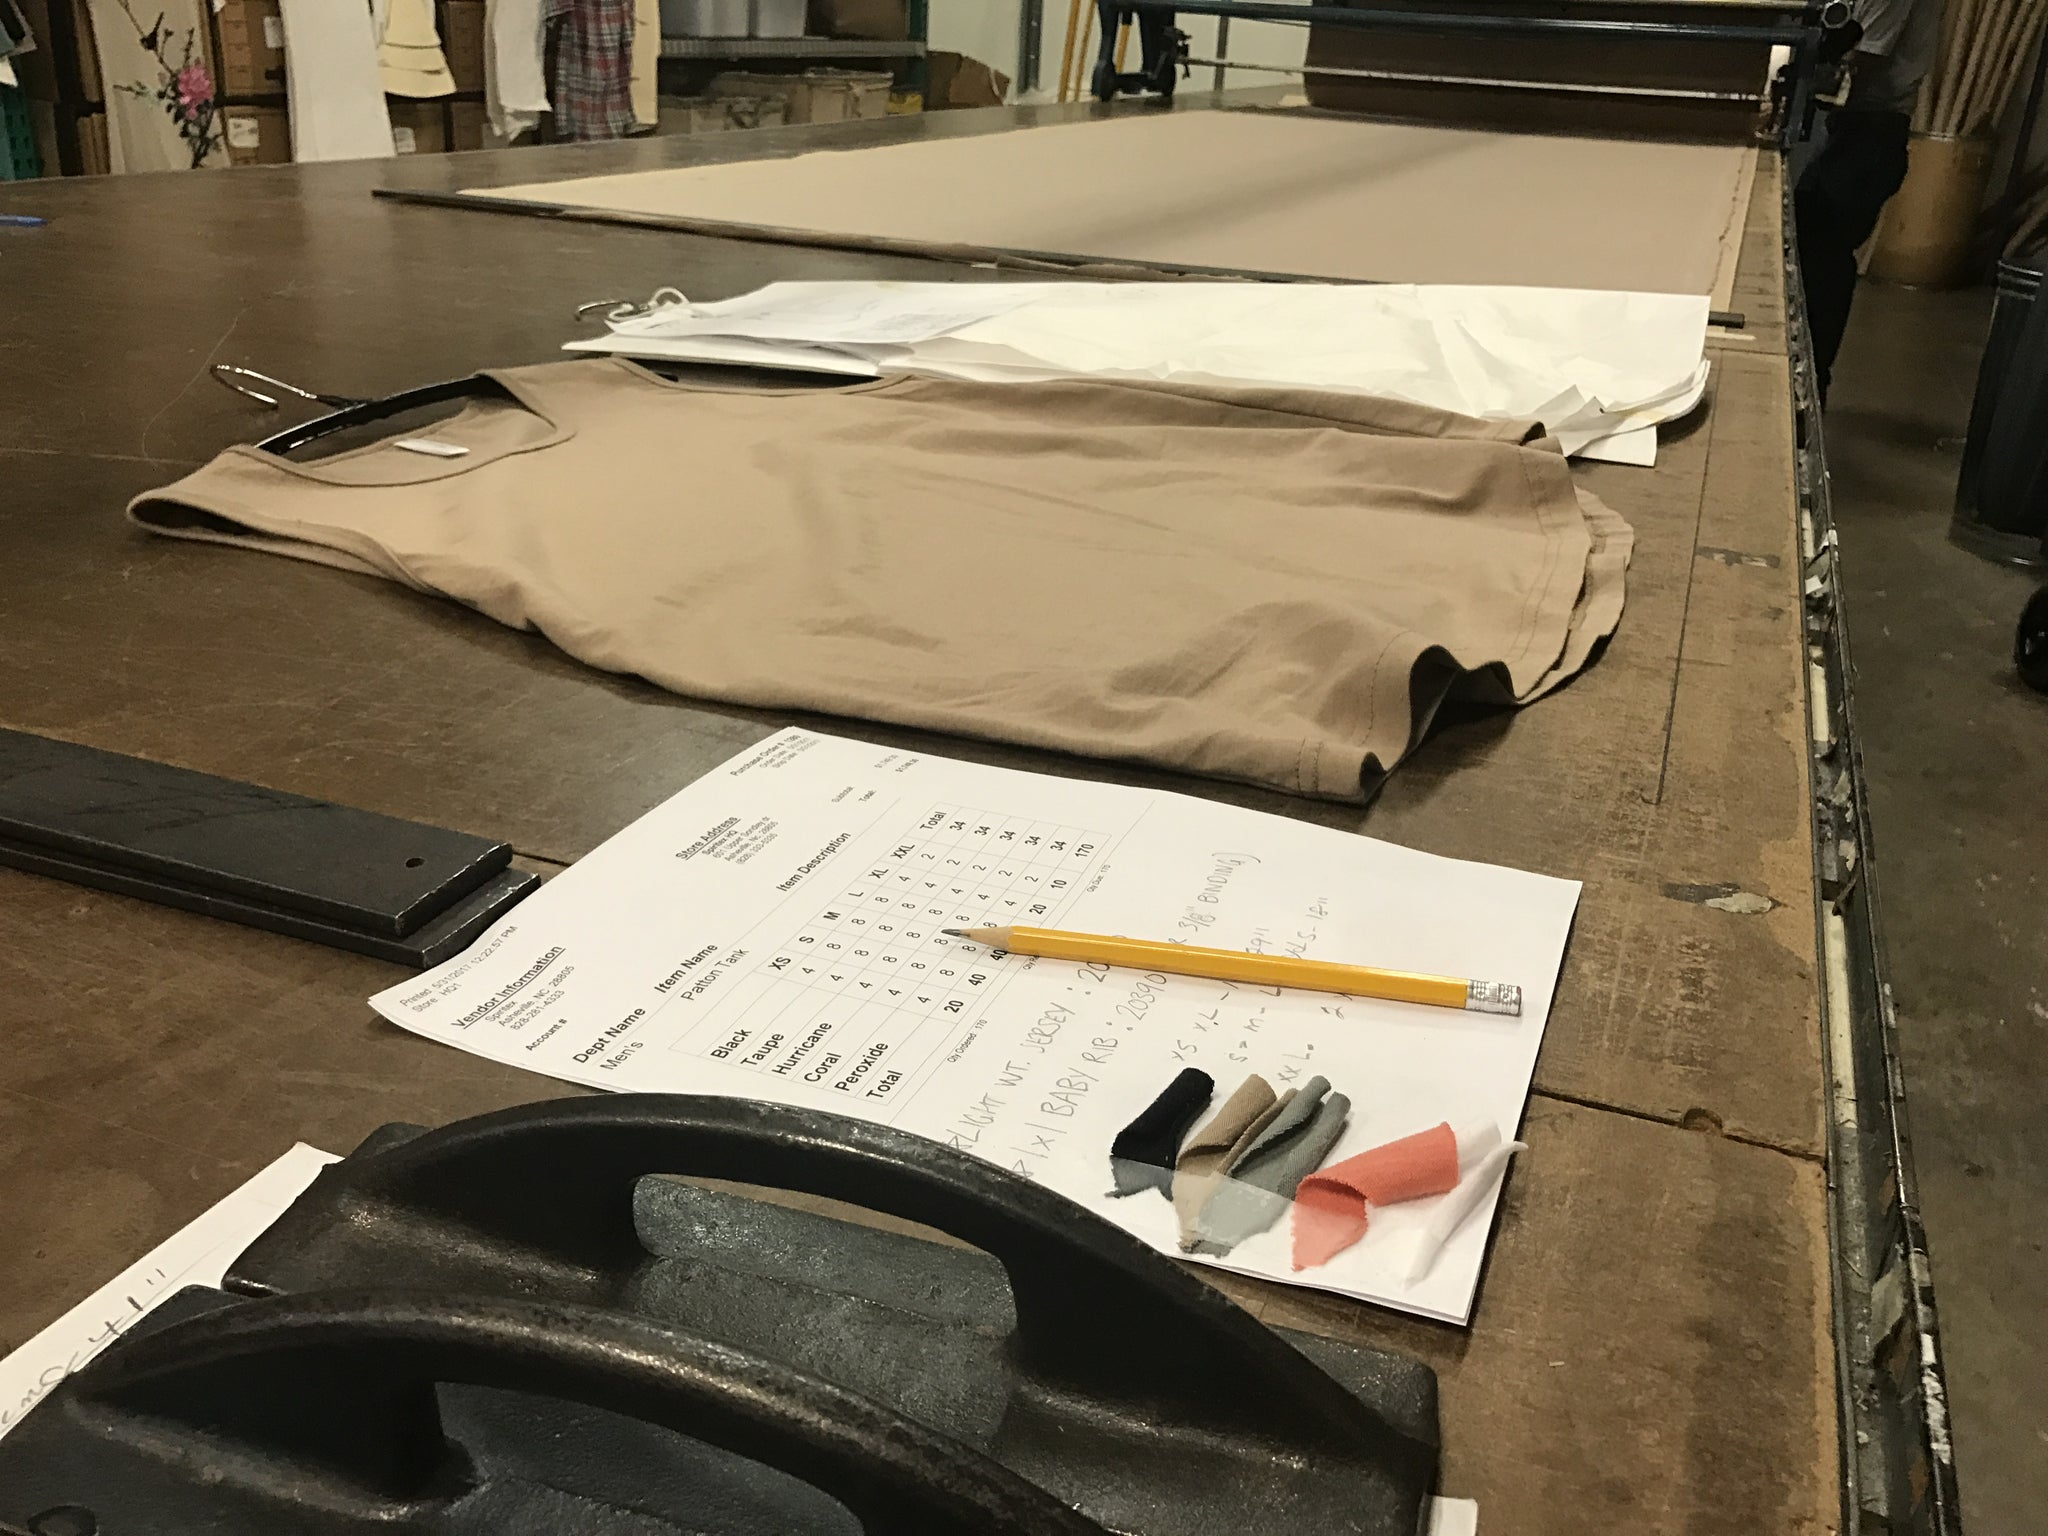 Insider Insight - What's on the Cutting Table.